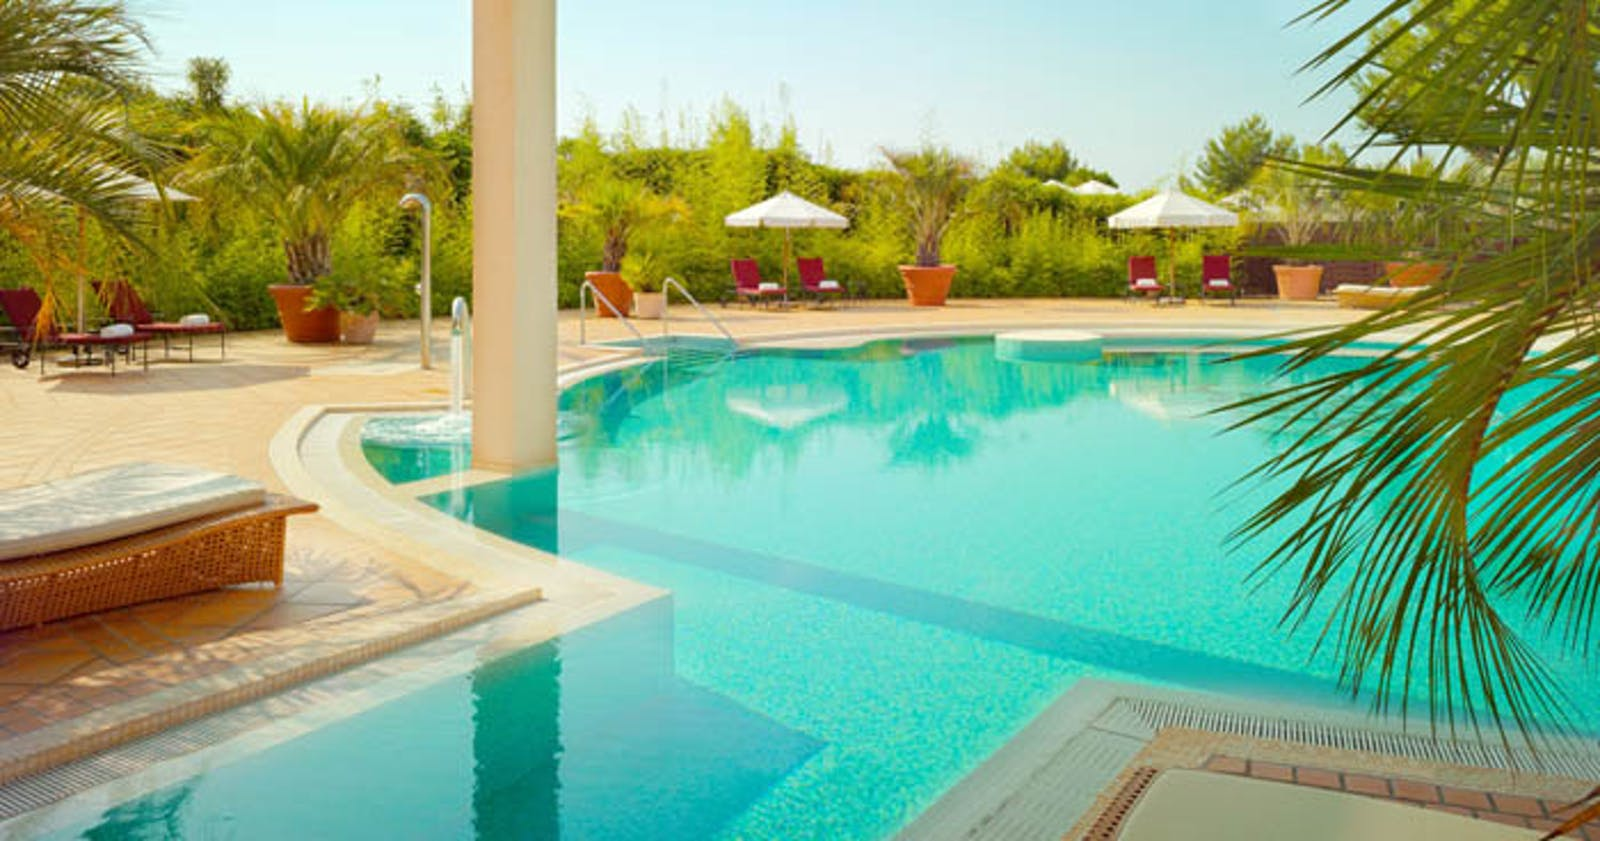 Swimming Pool at The St Regis Mardavall Mallorca Resort, Spain